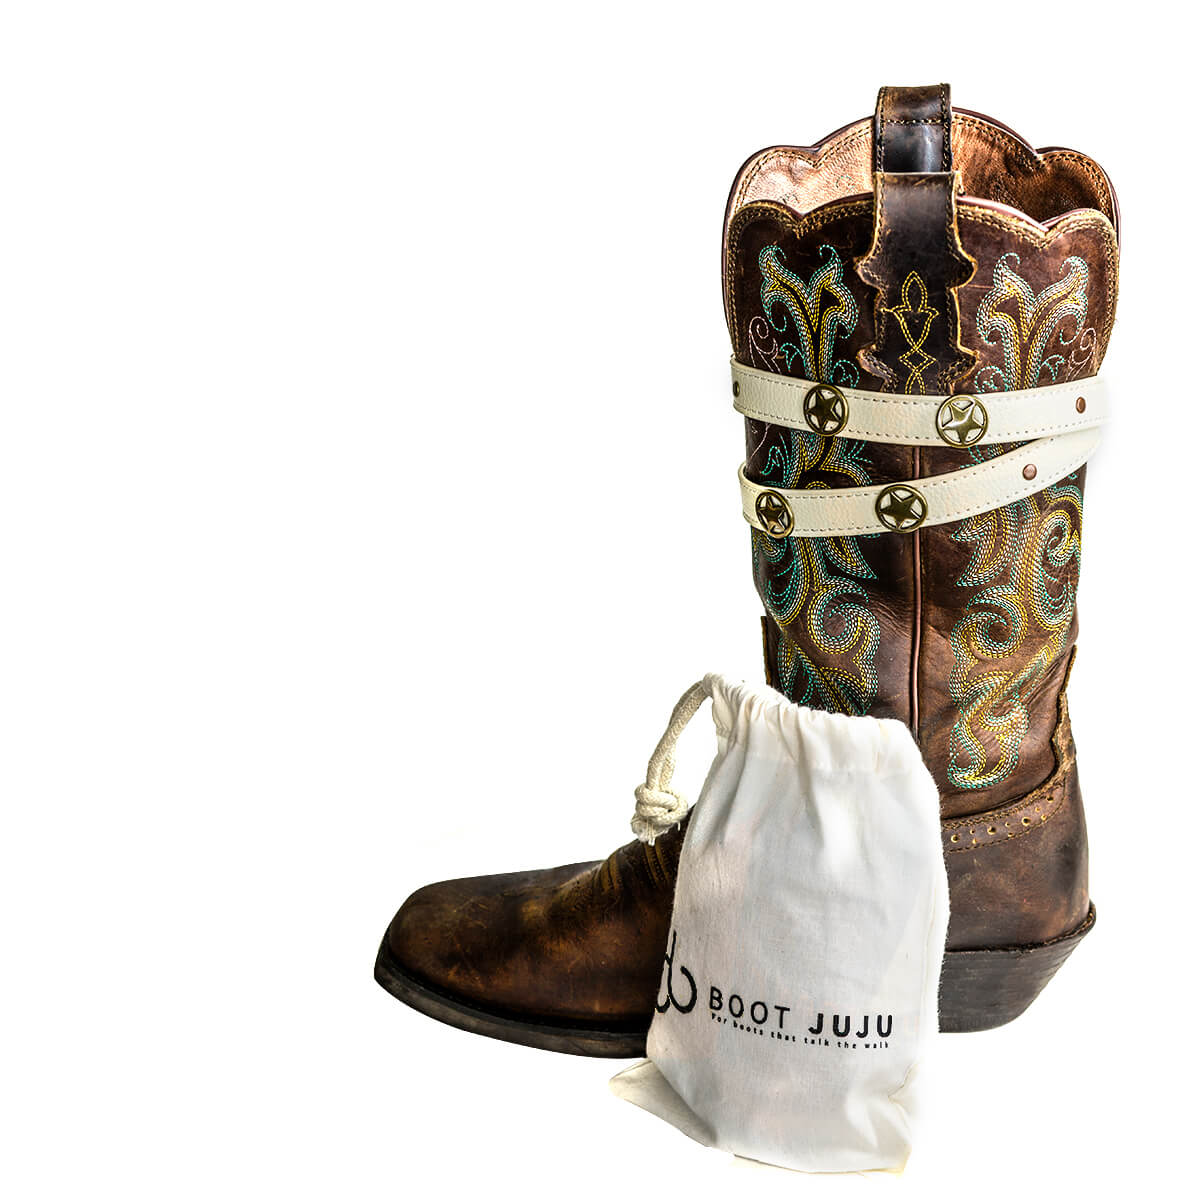 Dallas Double Strap Boot JuJu on cowboy boot